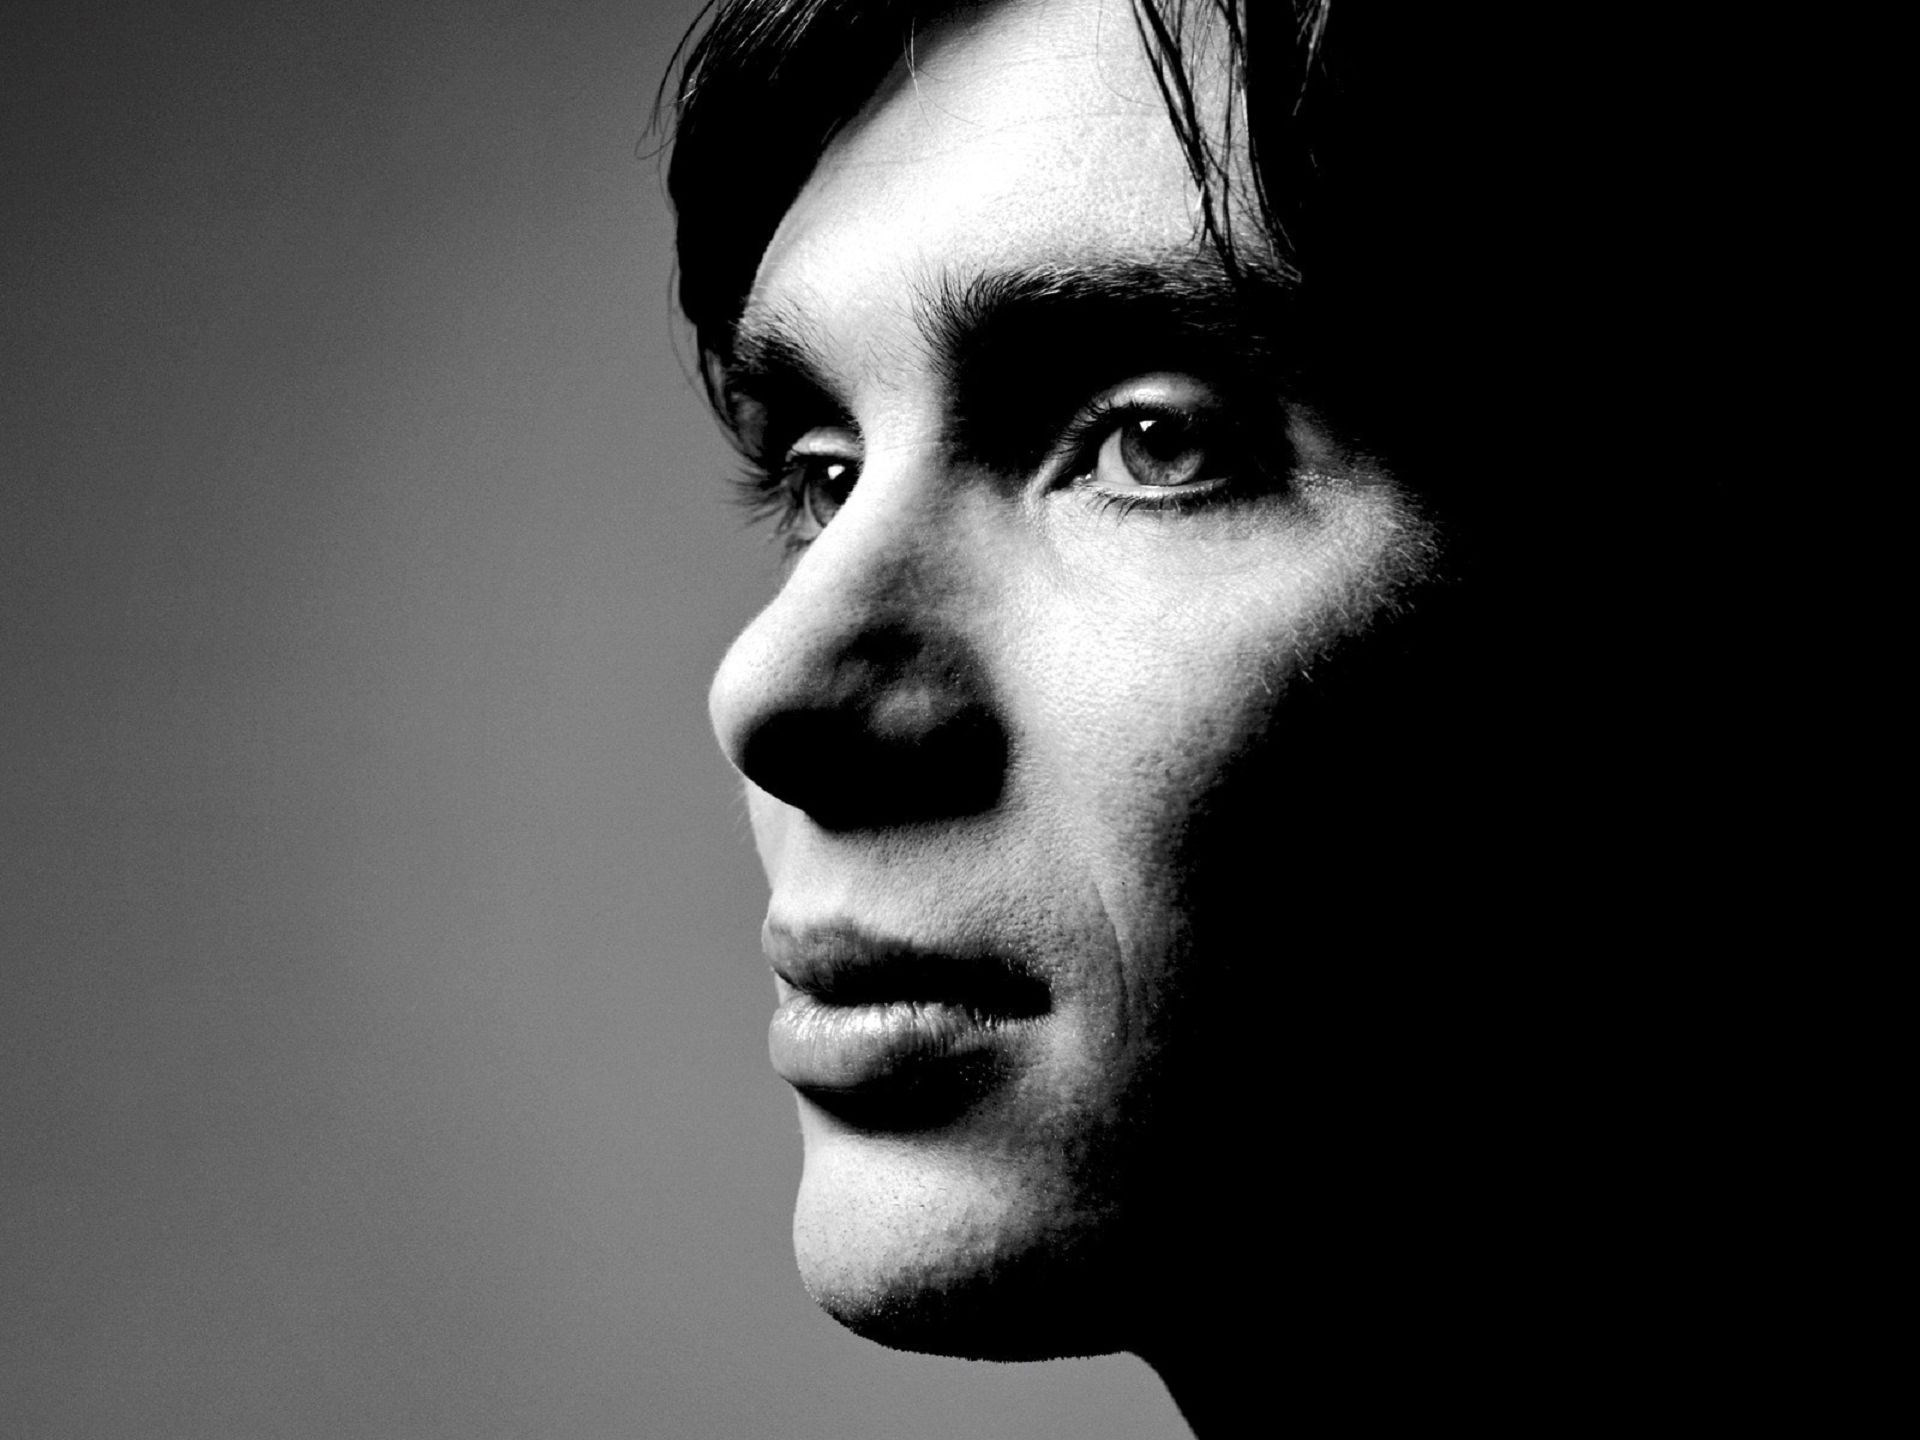 monochrome cillian murphy face wallpaper 59179